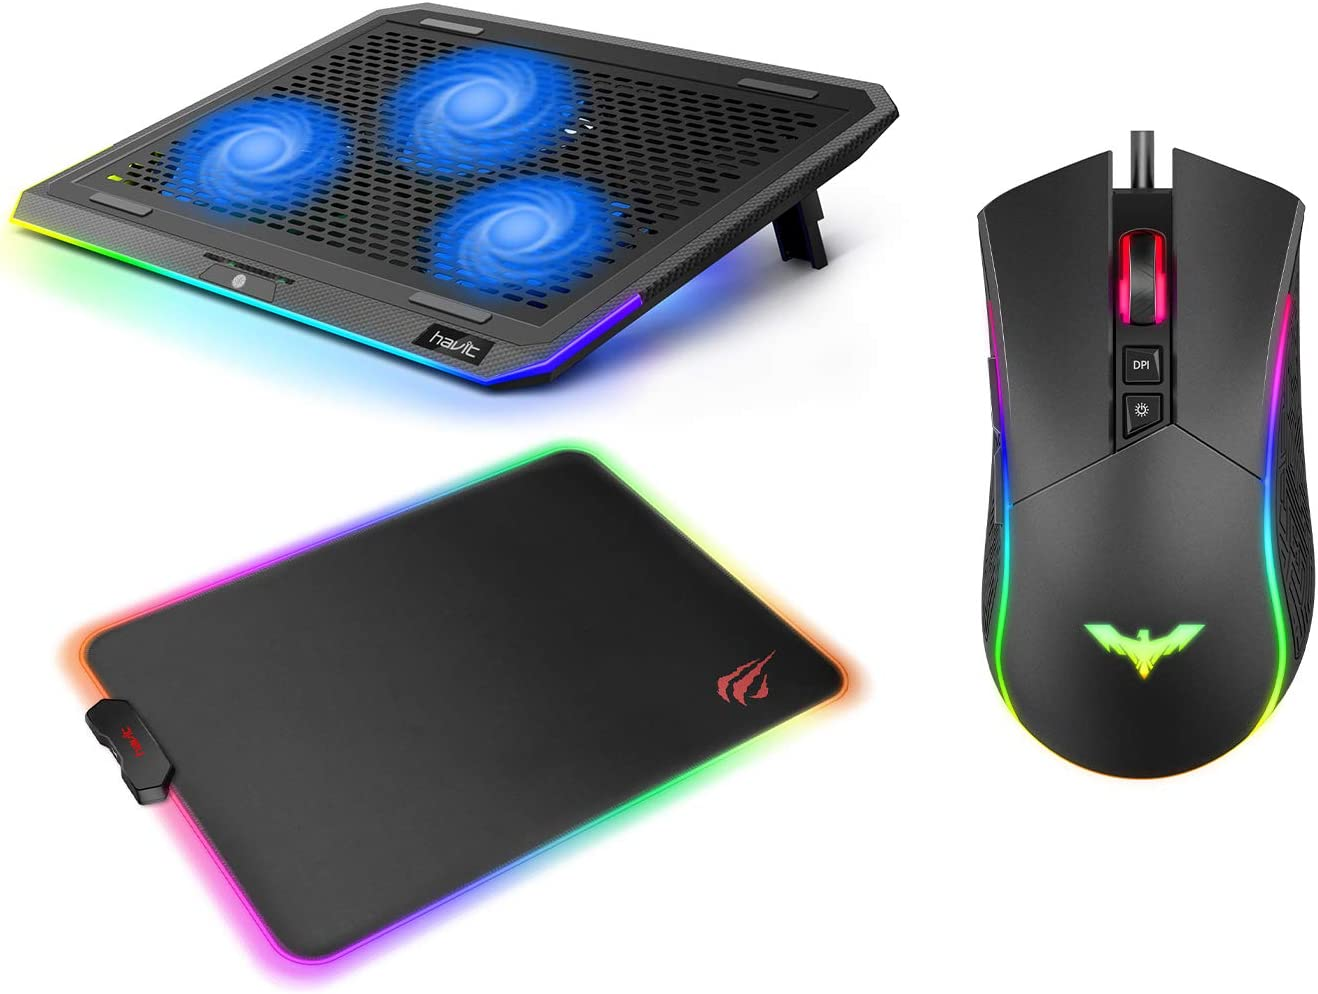 havit RGB Laptop Cooling Pad for 15.6-17 Inch Laptop and RGB Gaming Mouse Pad and RGB Gaming Mouse Wired Programmable